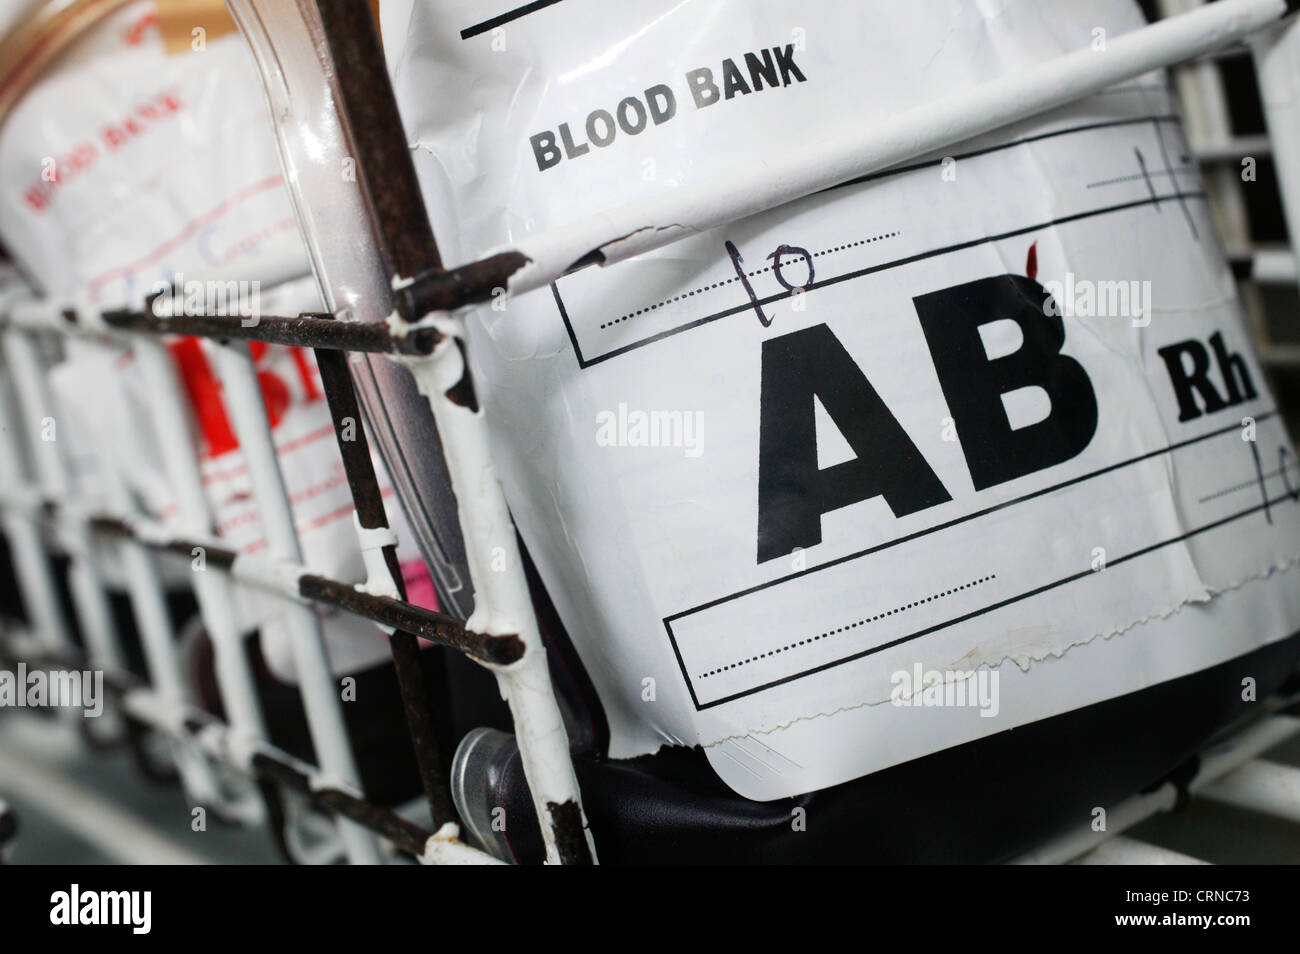 A blood bag containing group AB blood. Blood group AB contains both A an B antigens and has no Antibodies present. - Stock Image